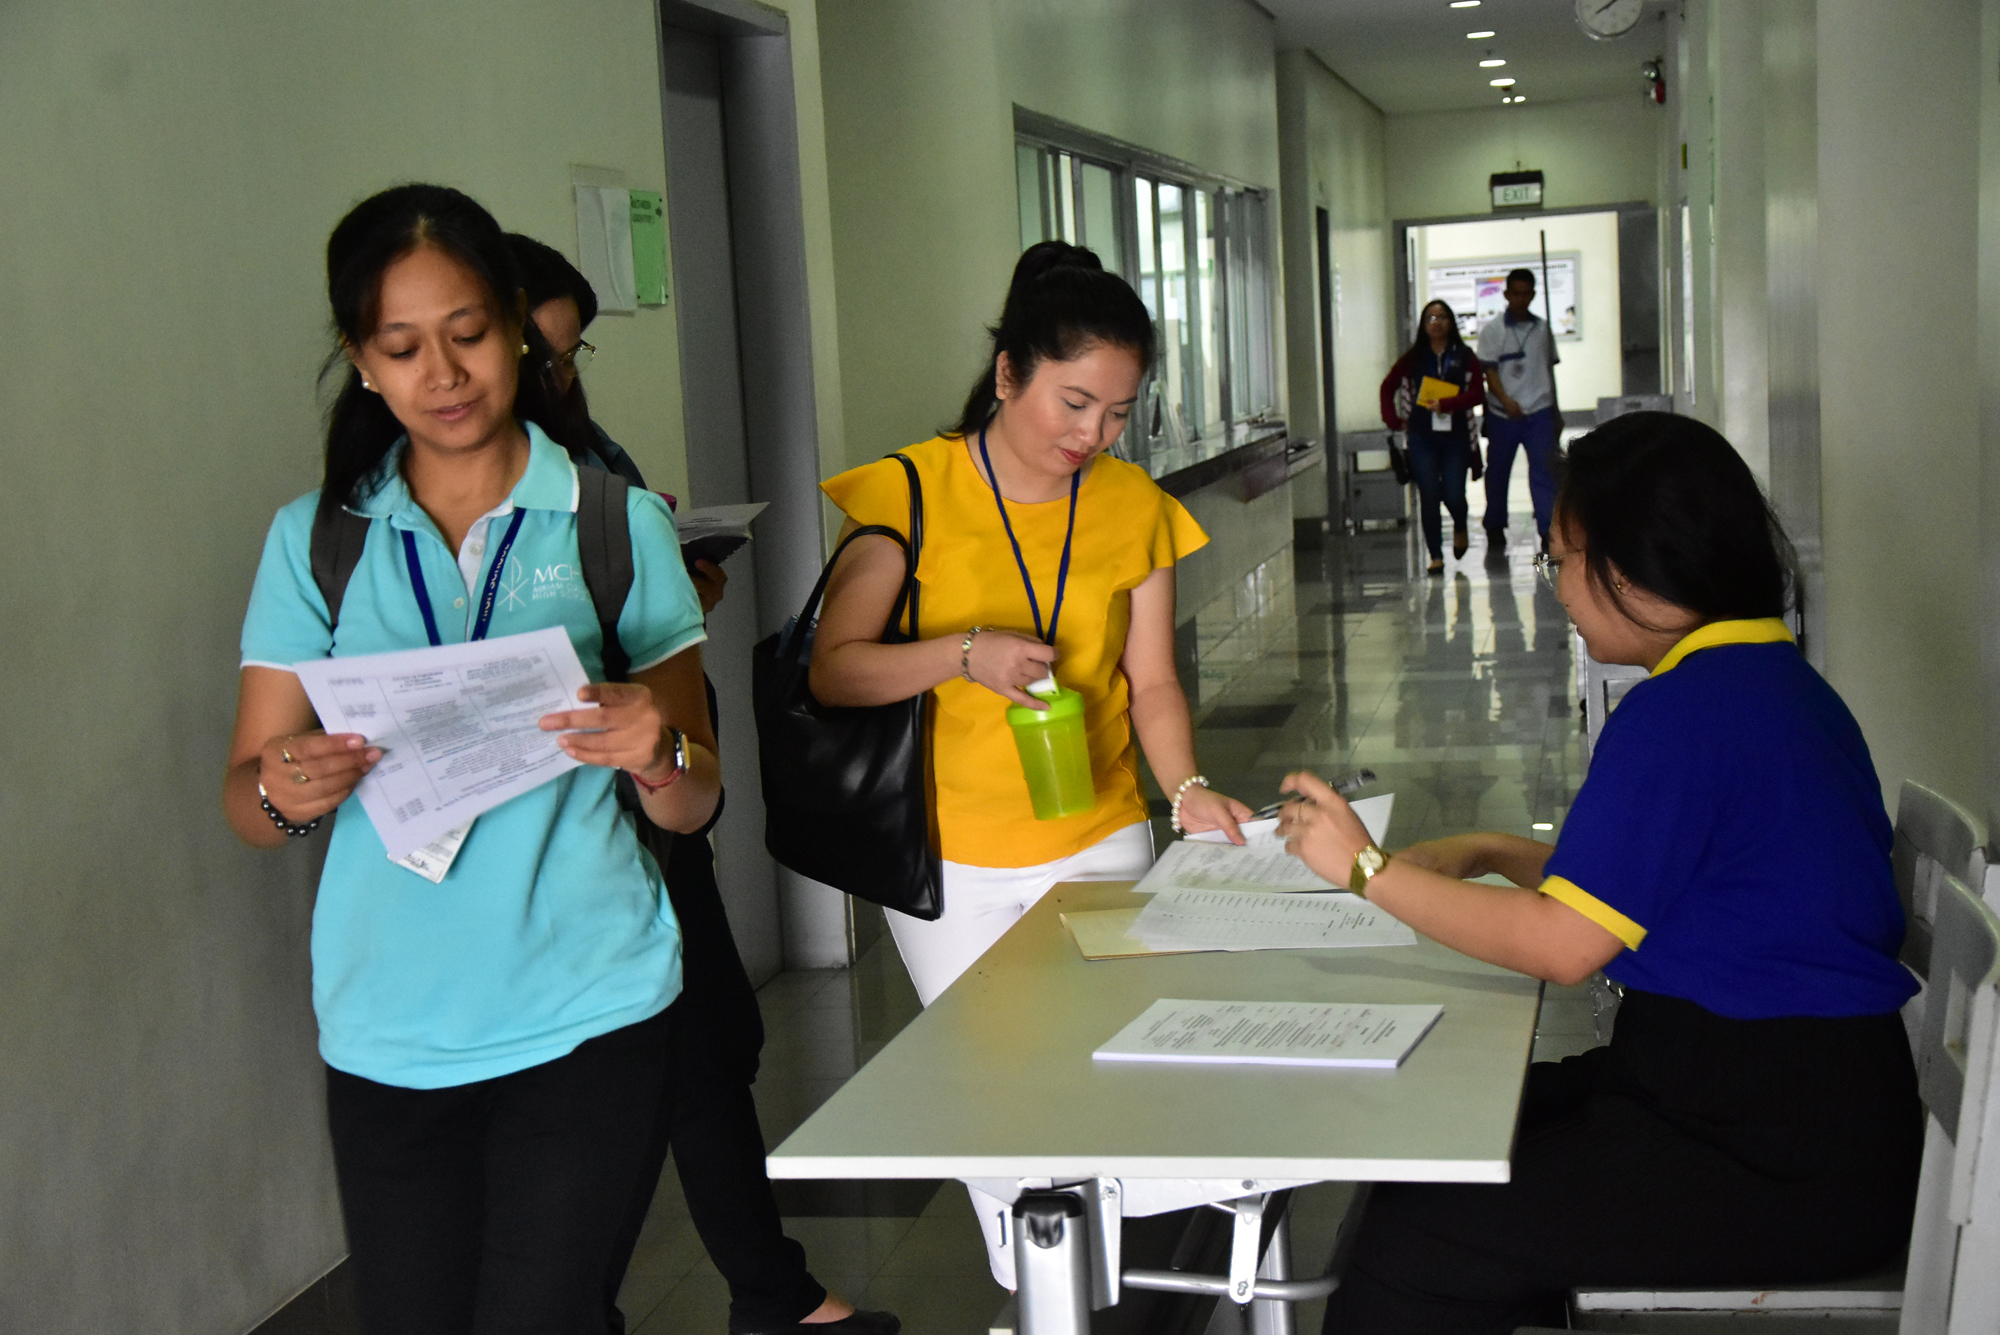 Ms. Ysa Padua, CSR Technical Assistant, assisting during the registration